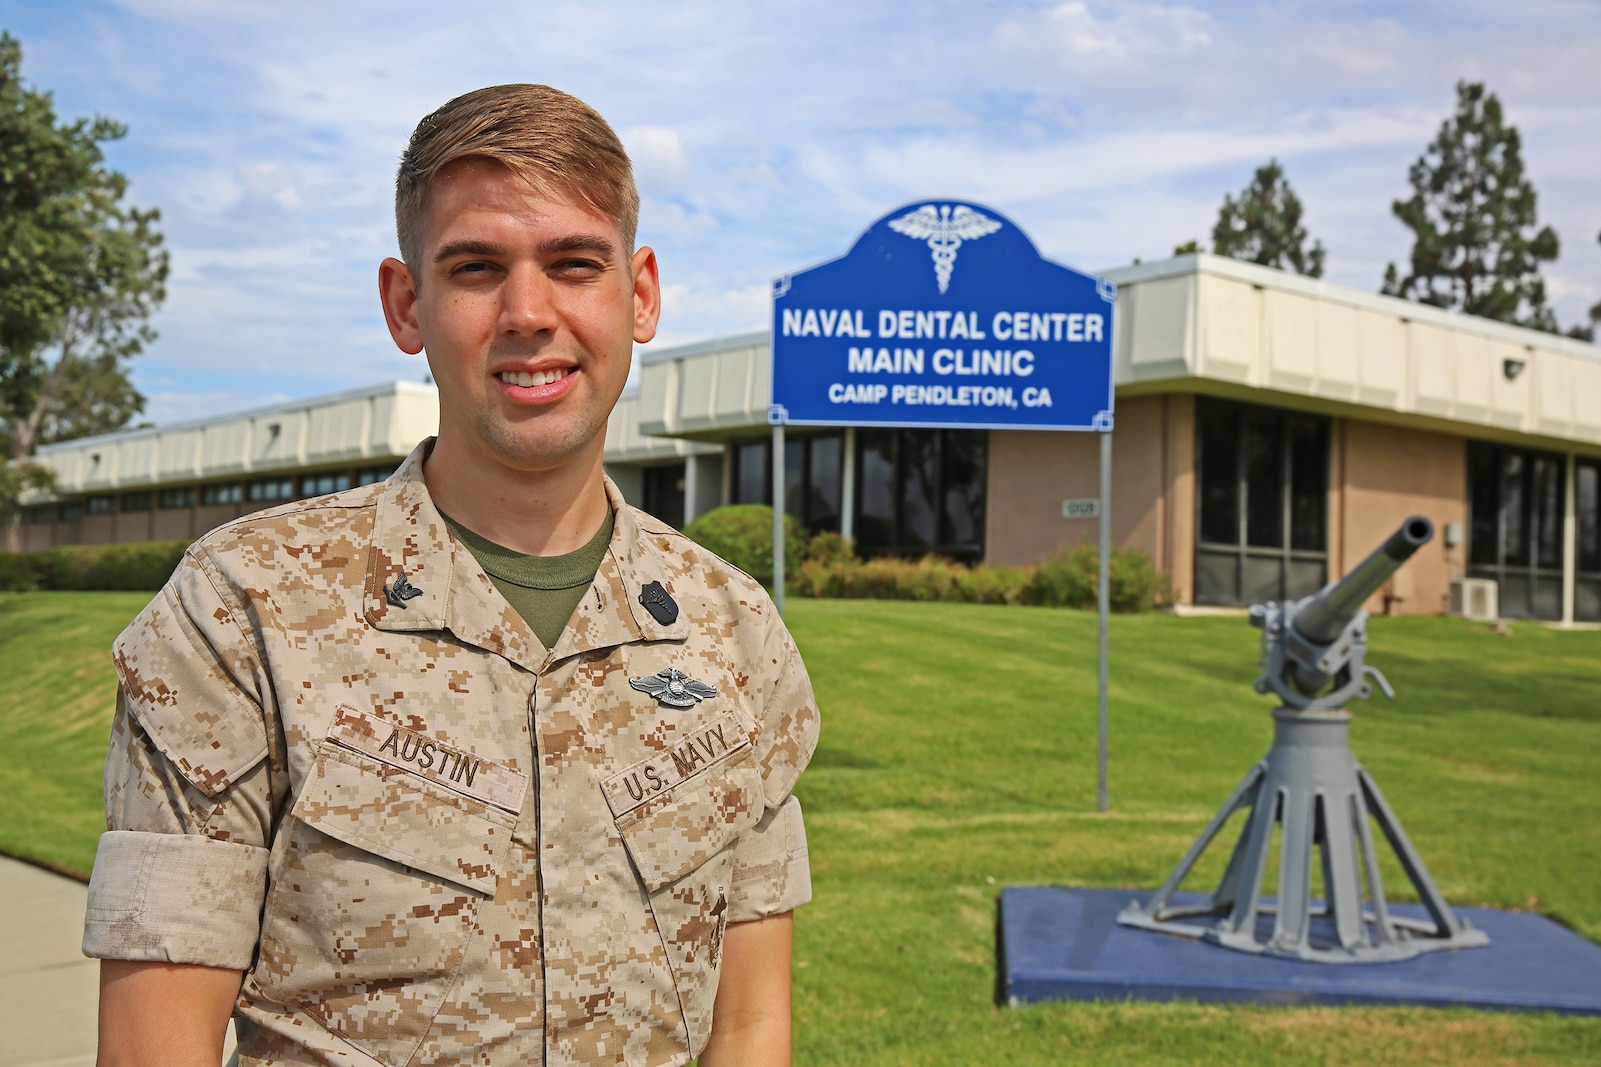 """Petty Officer 3rd Class Andrew Austin, a dental technician with 1st Dental Battalion, 1st Marine Logistics Group, stands in front the 13 Area Dental Clinic aboard Camp Pendleton, Calif., July 23, 2014. Dental technicians provide much needed assistance to dentists by setting up and maintaining  equipment, putting the patients at ease, preparing them for treatment and performing X-ray scans and administrative tasks. """"As dental technicians, we need to take care of patients' needs,"""" said Austin. """"We work hand-in-hand with the dentists for eight hours a day to provide those needs and maintain combat readiness."""""""